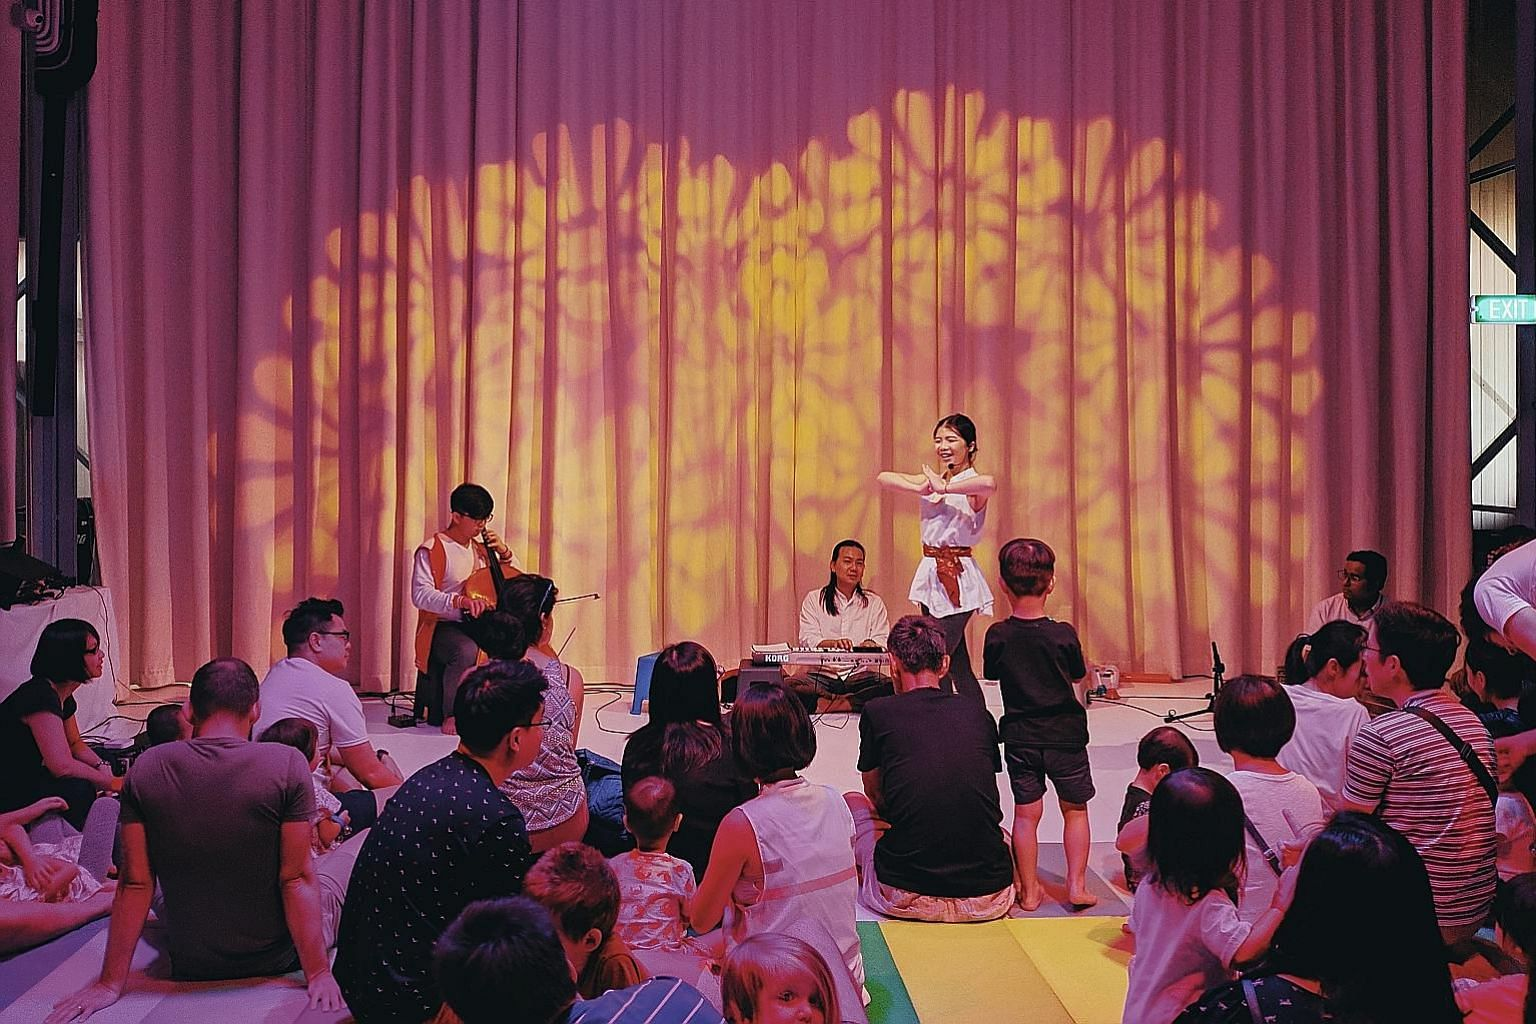 Parents and children taking part in an intimate play-jam session organised by the Little Creatures arts initiative at The Artground children's arts centre earlier this year.